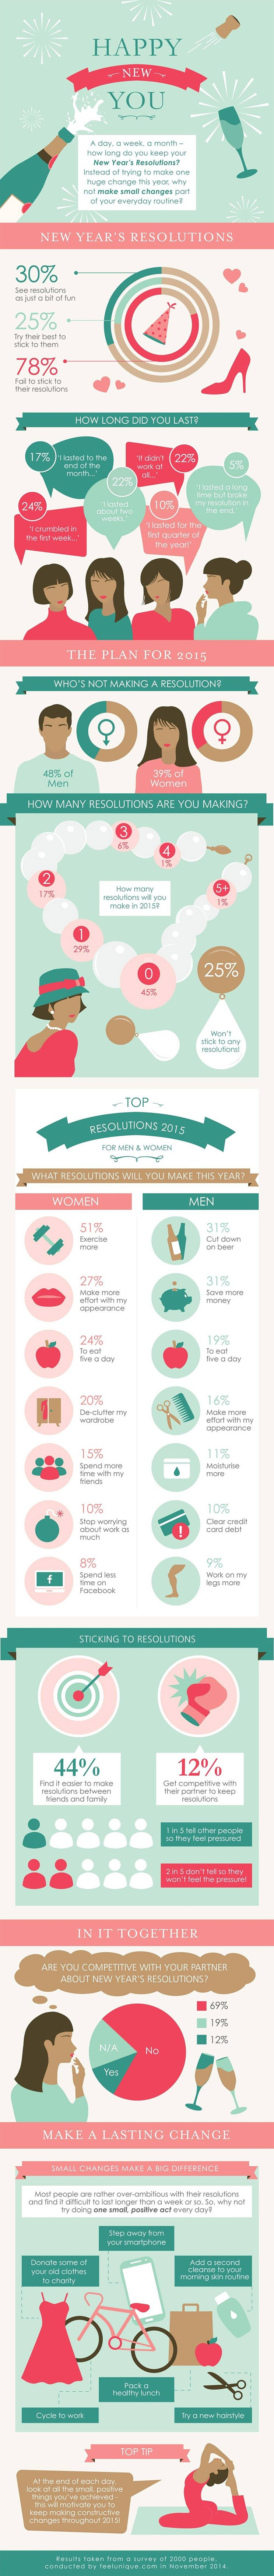 How Many of Us Actually Stick to Our New Year's Resolutions? (Infographic)